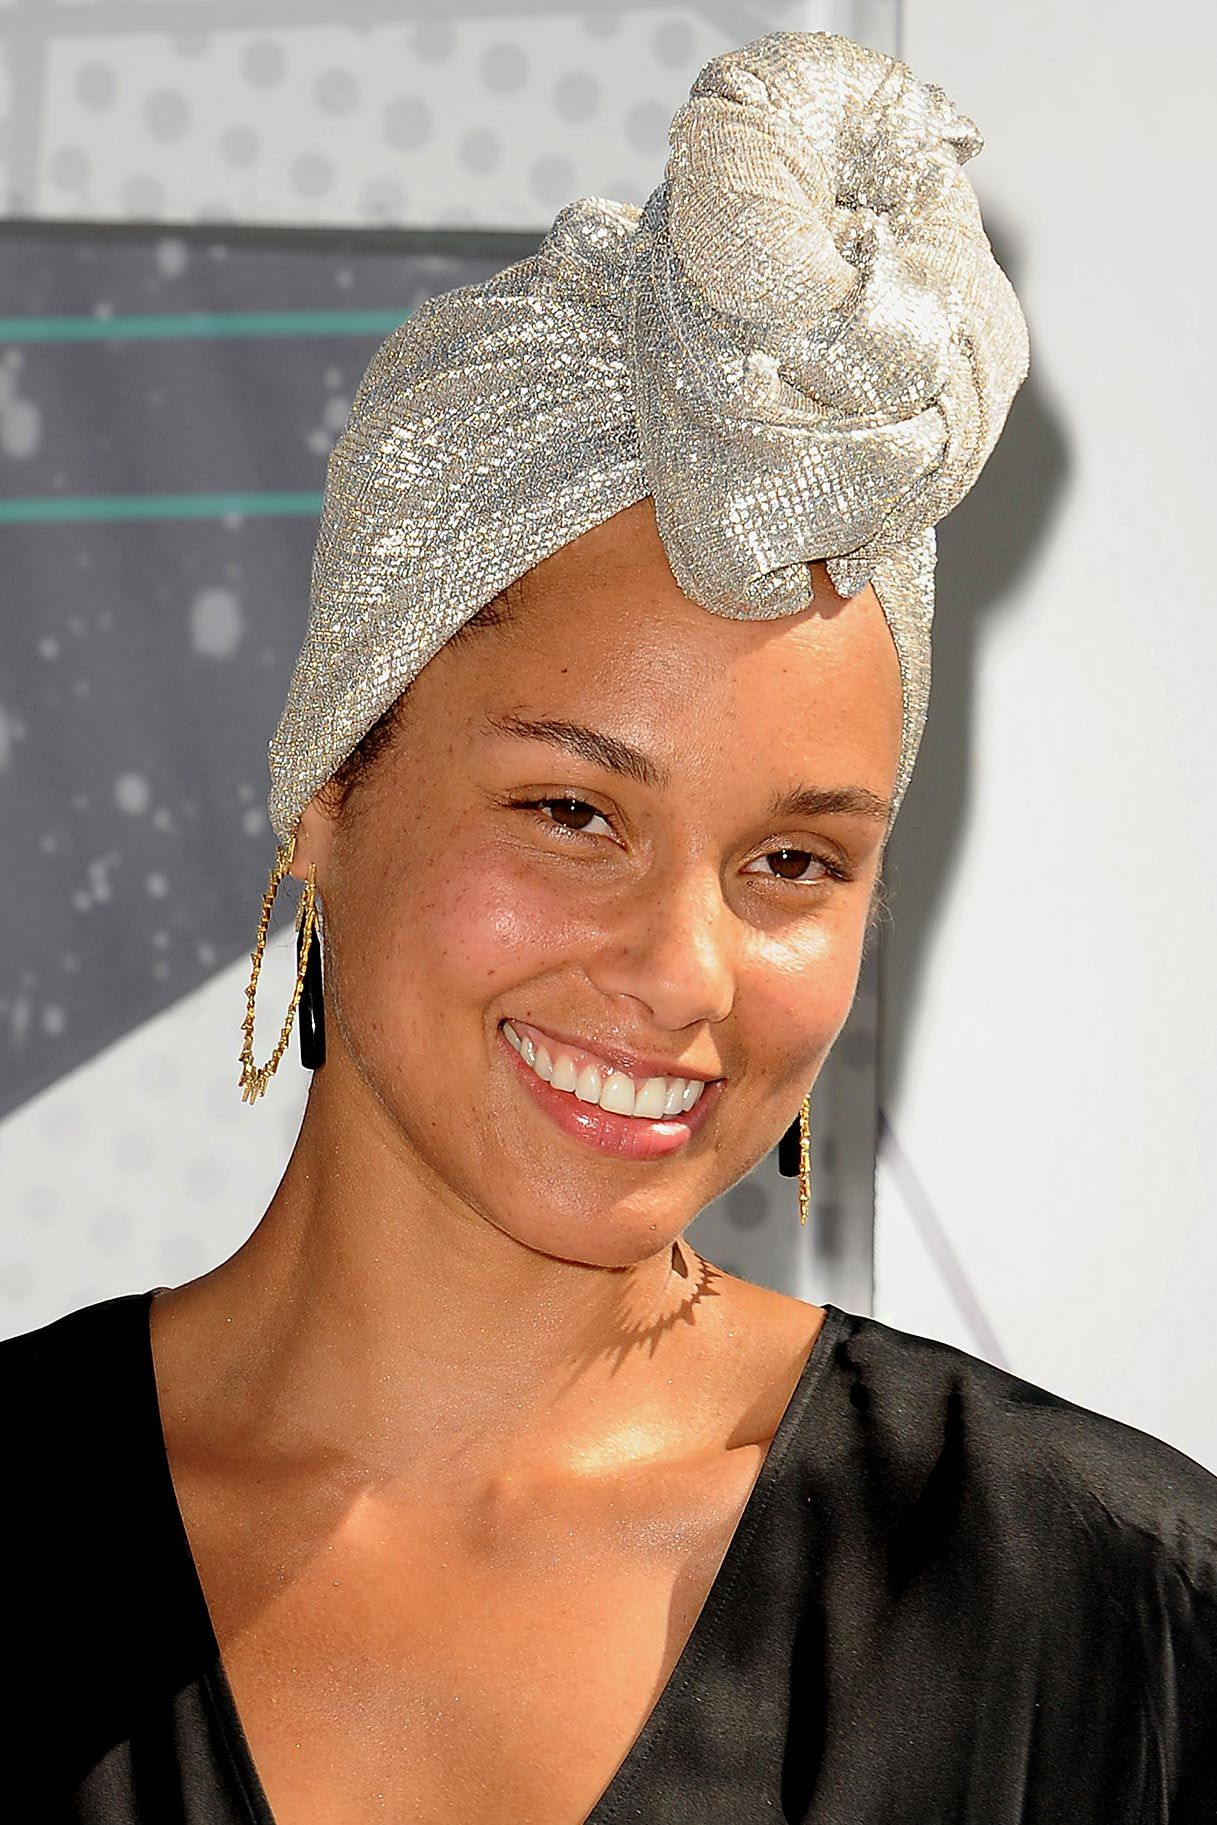 The New Thing In Makeup Is No Makeup Alicia Keys No Makeup Alicia Keys Celebrity Beauty